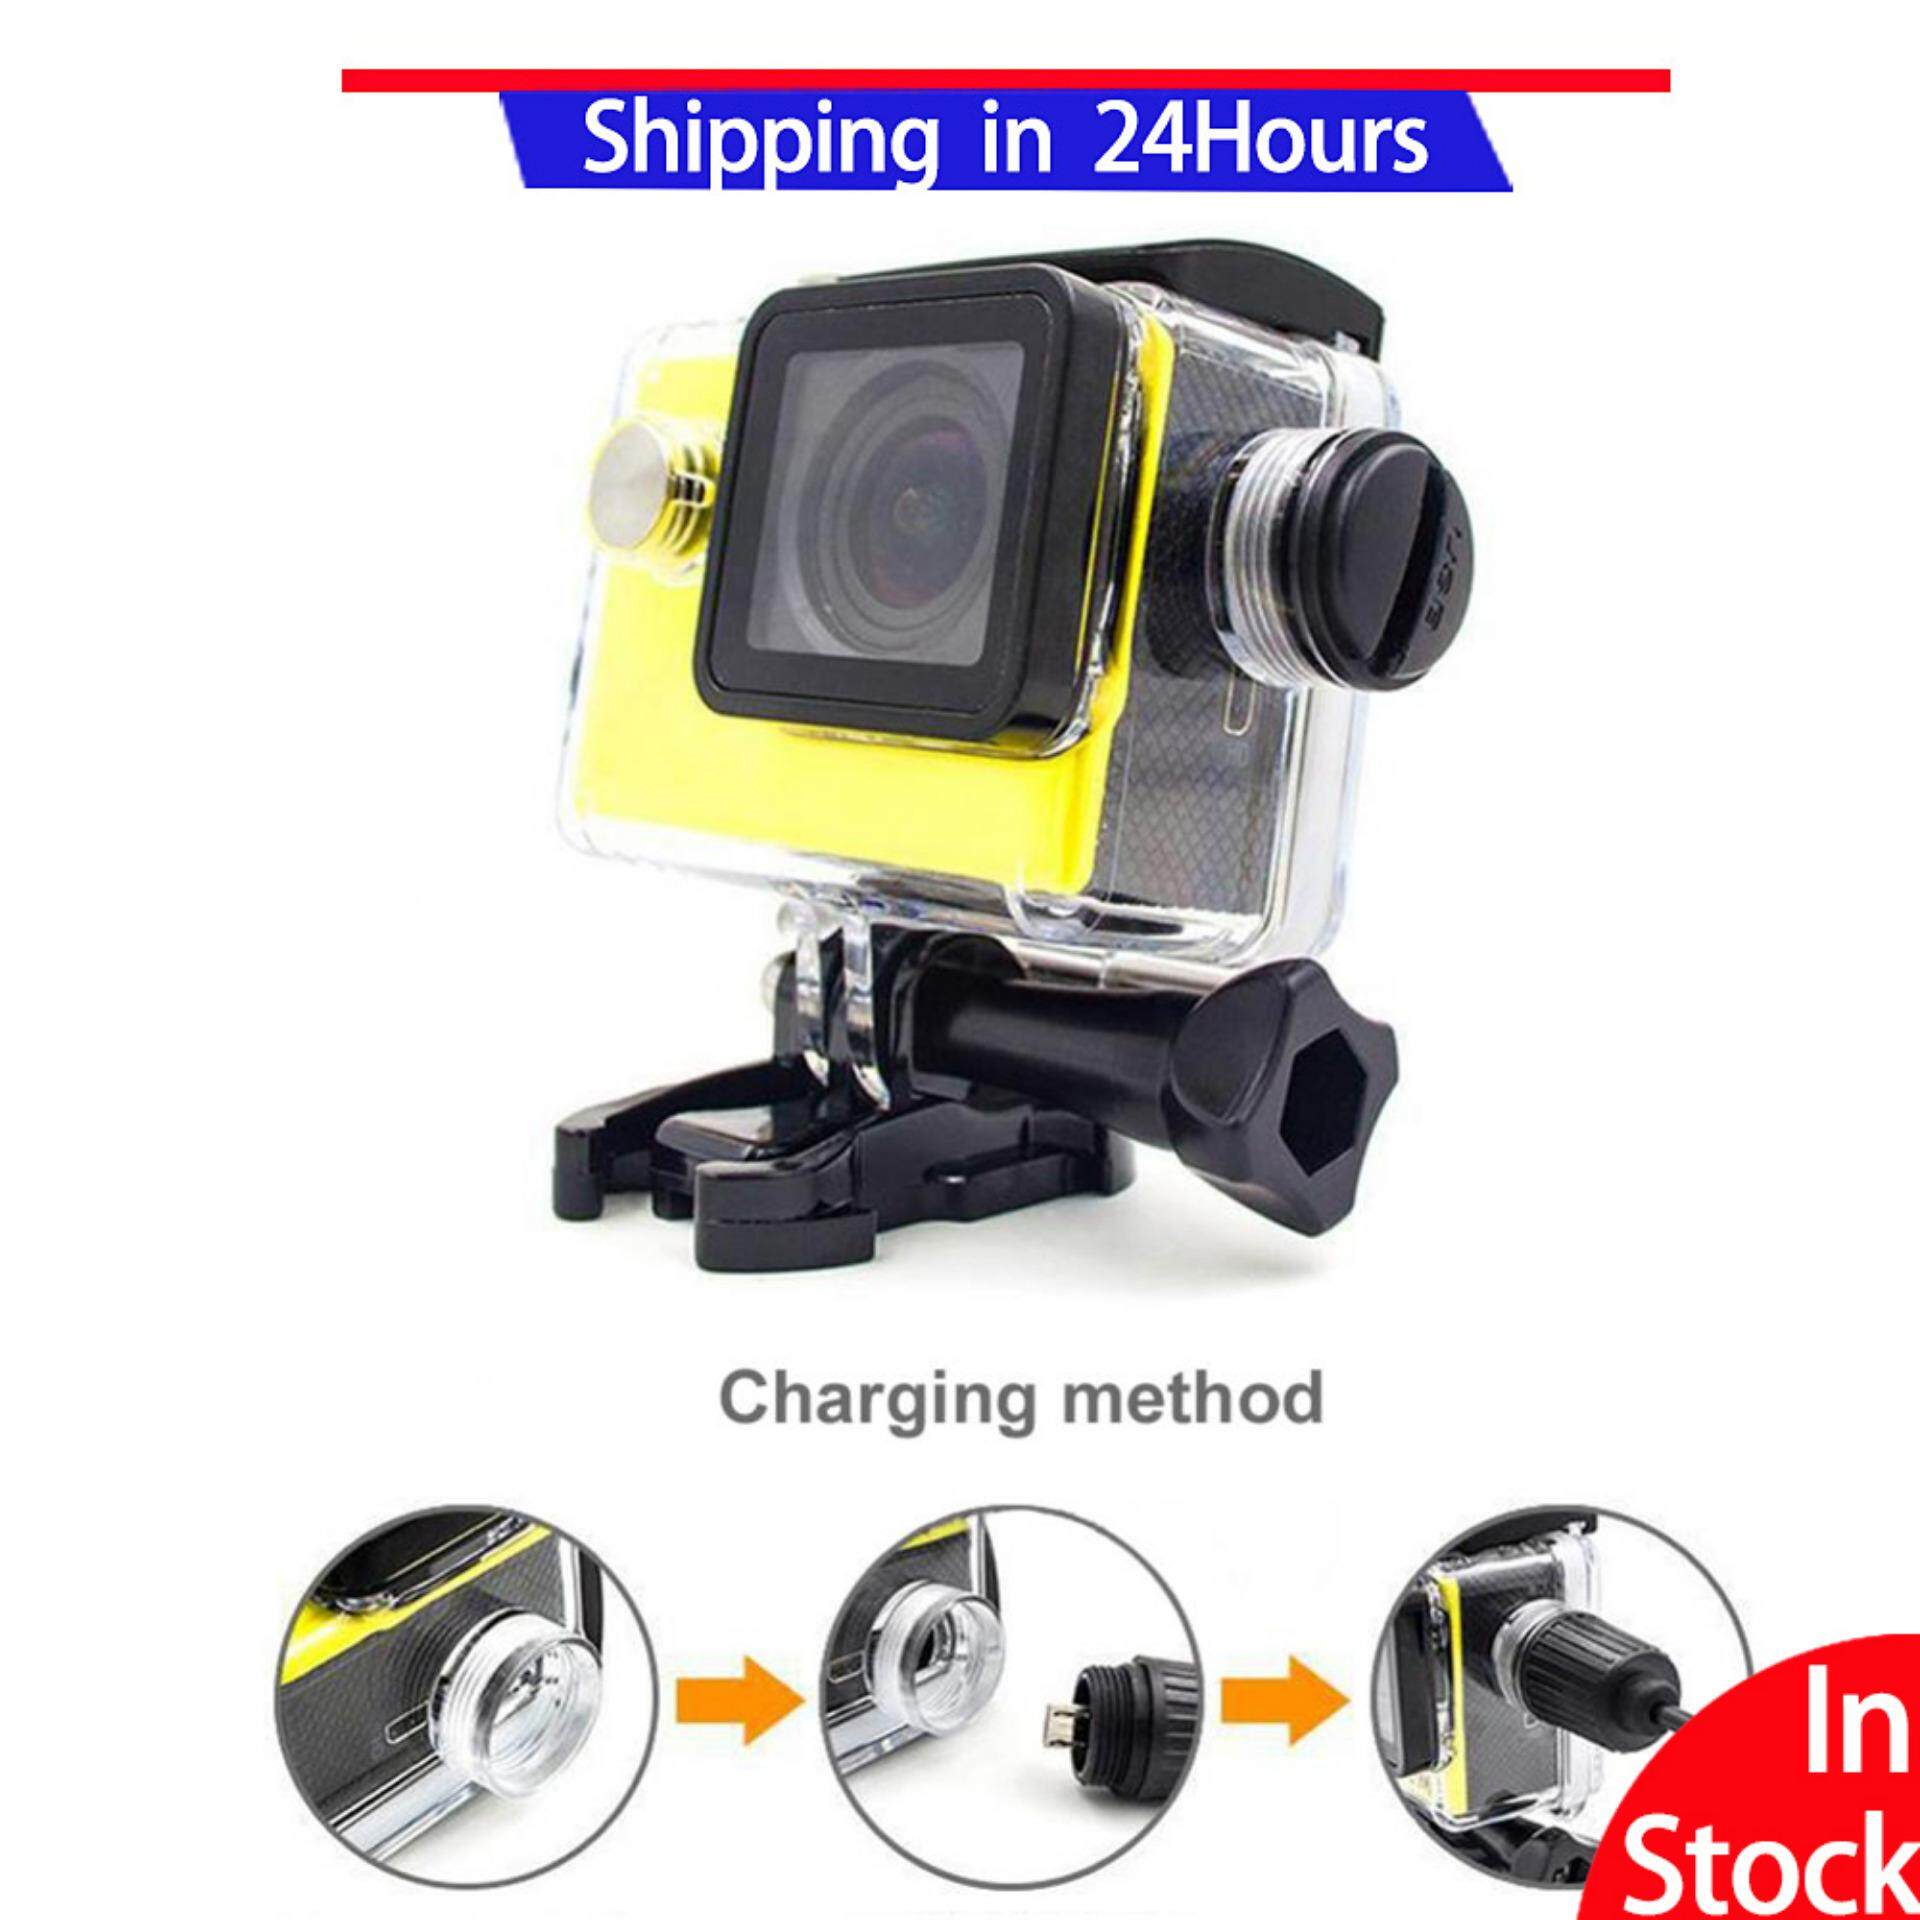 Sweatbuy Sport Camera Waterproof Case Accessories With Charging Cable For Sjcam Sj4000/sj7000 - Intl.